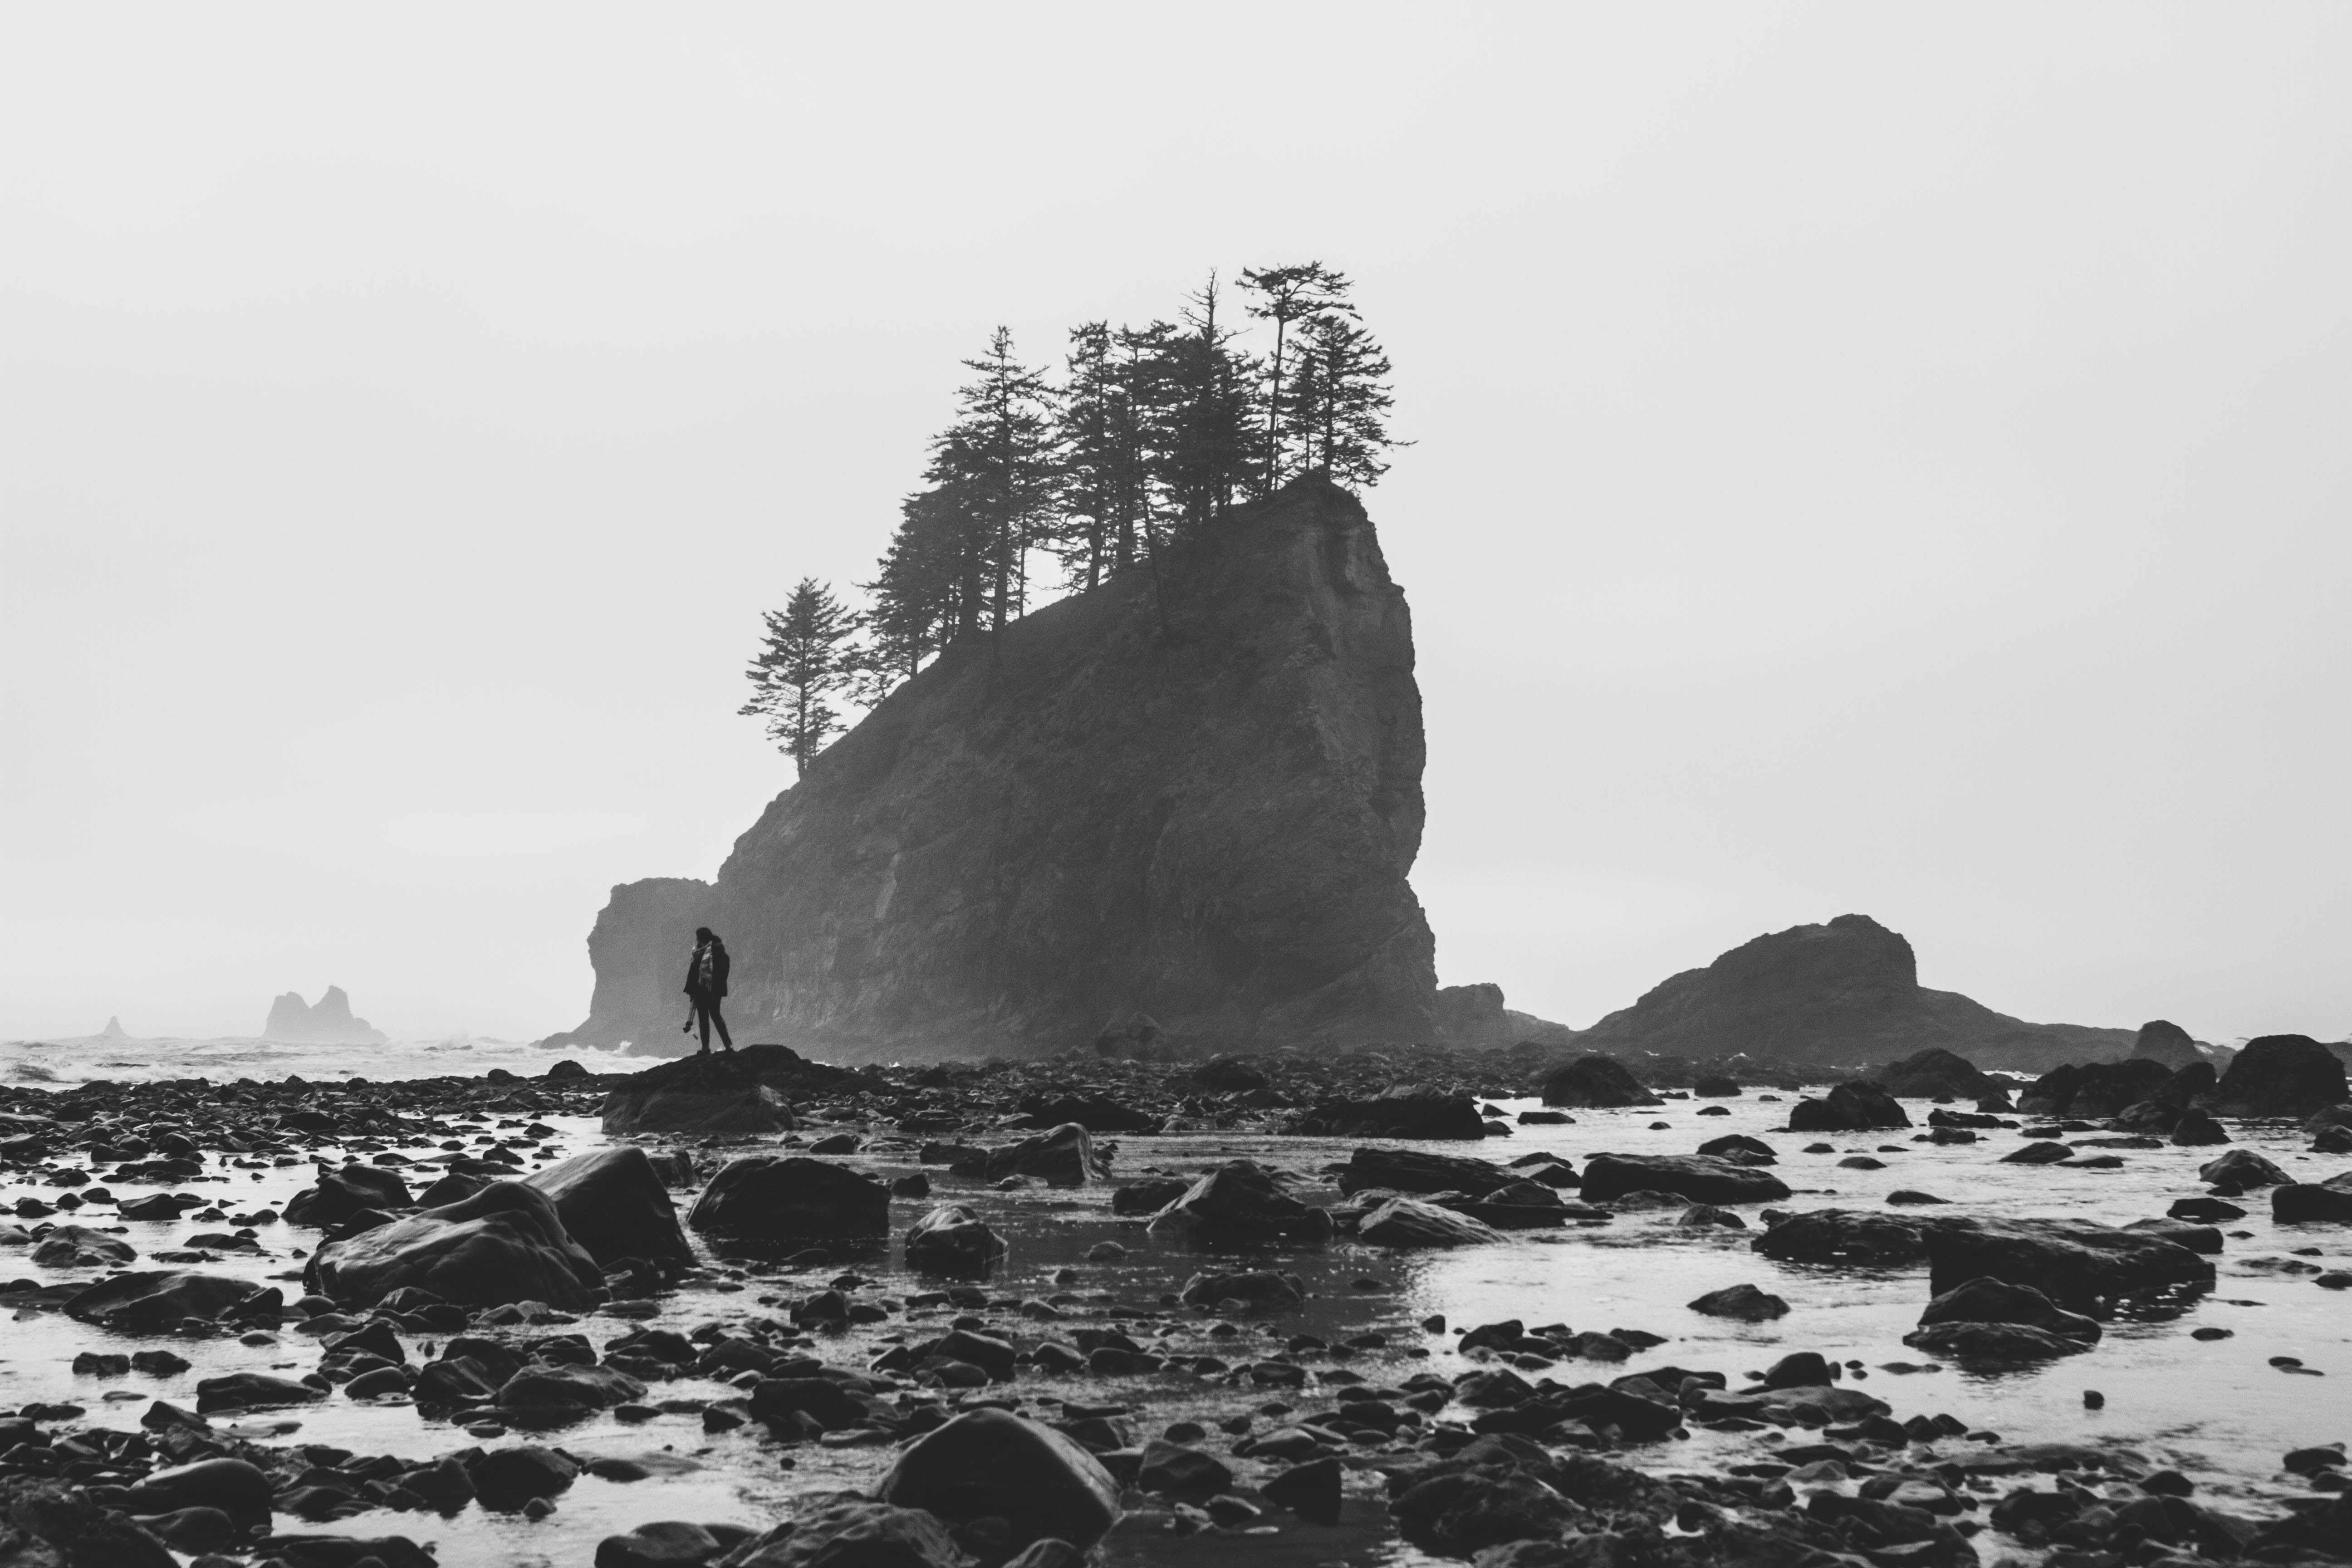 grayscale photography of person on rock formation